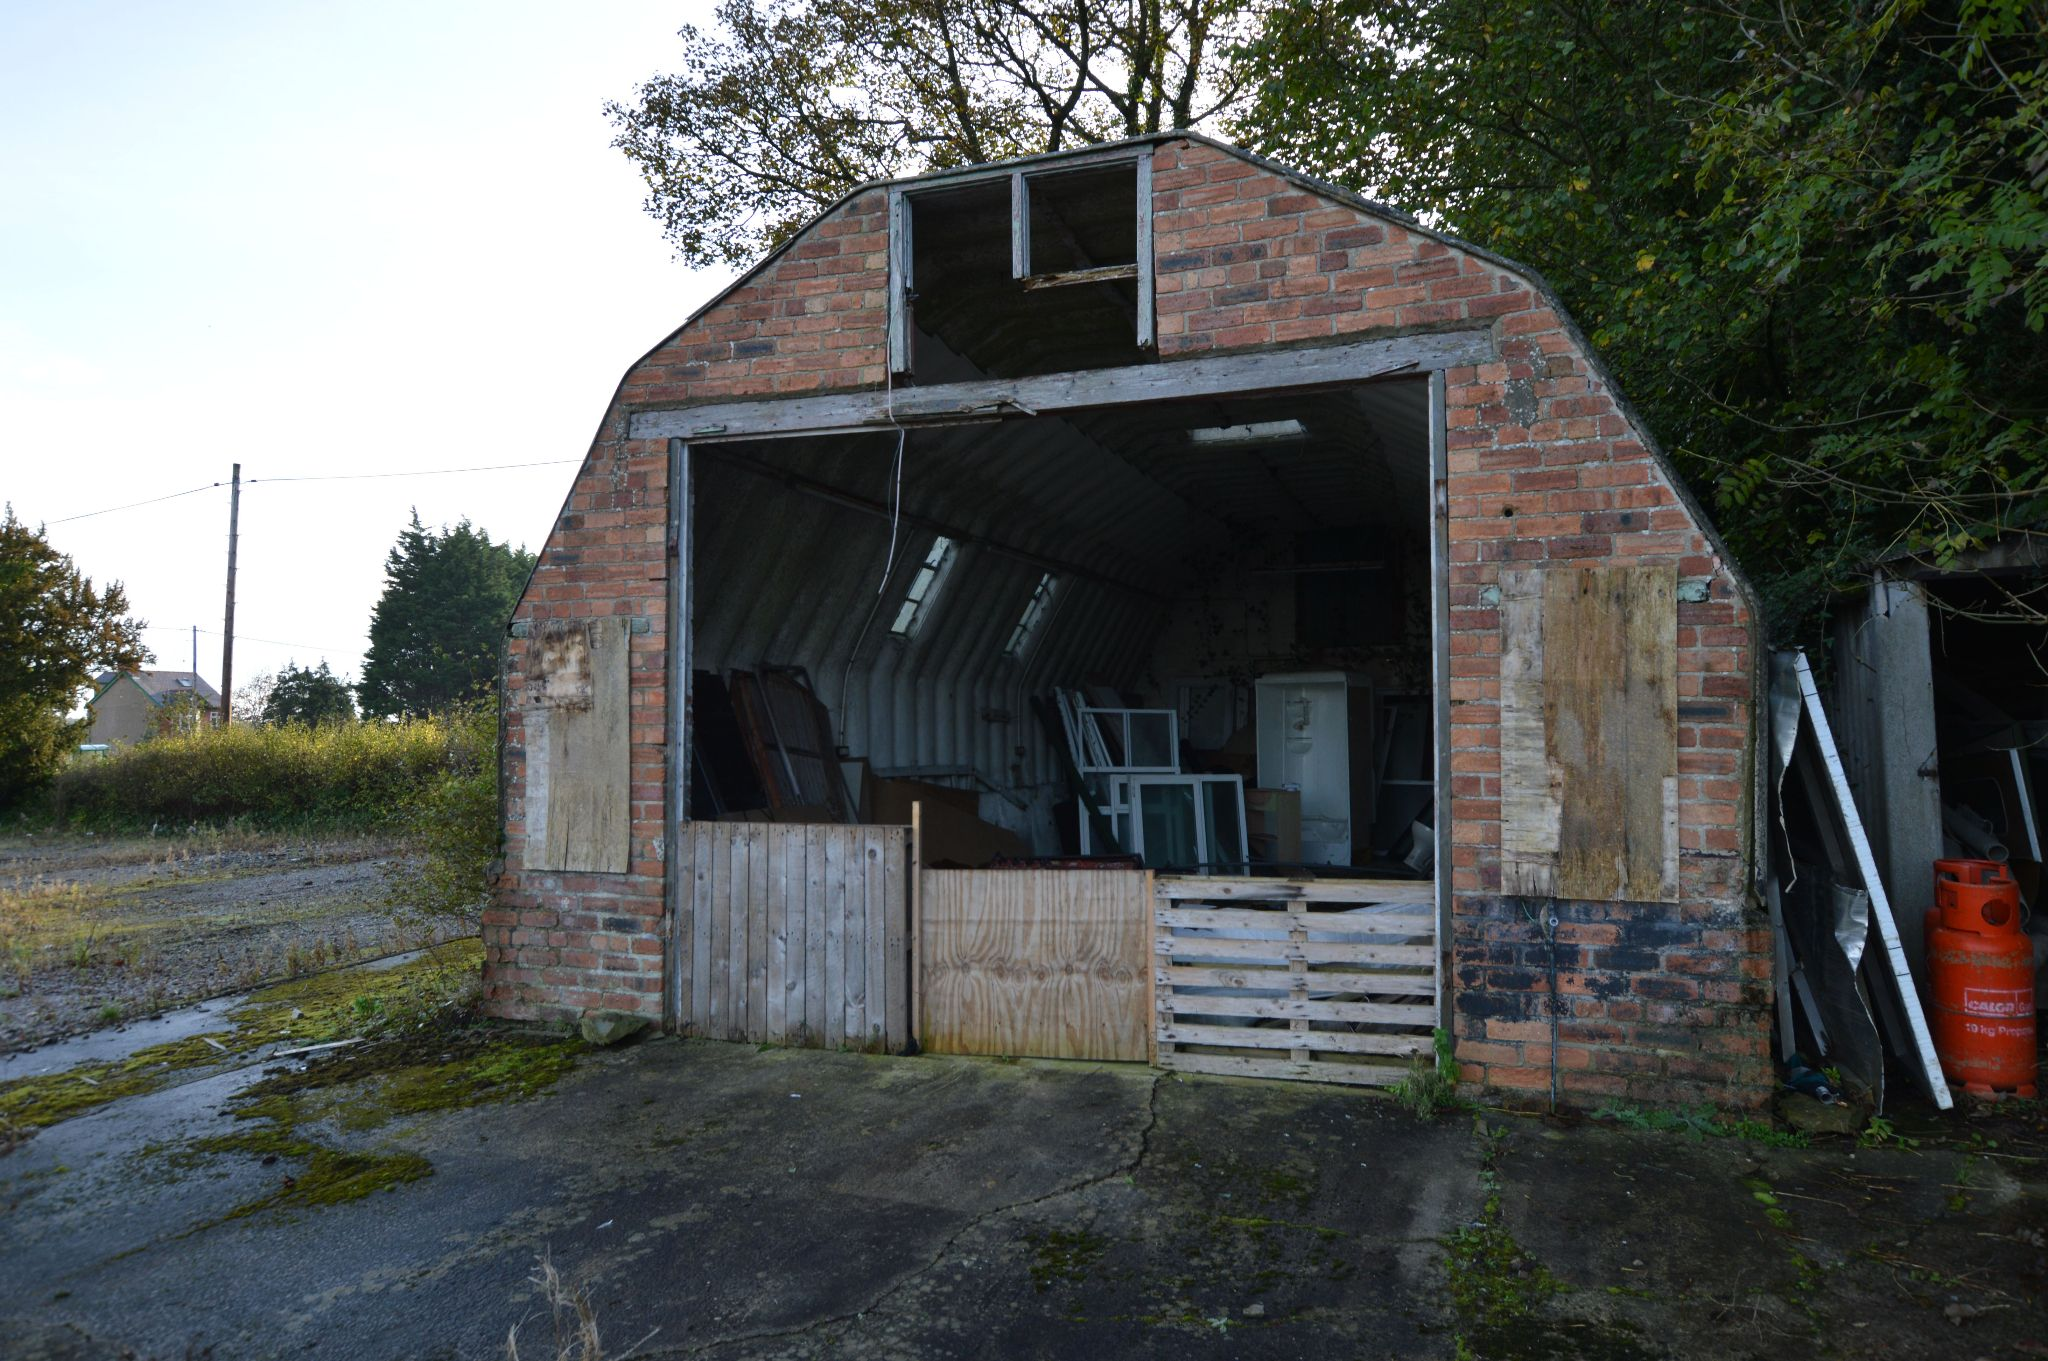 Land For Sale in Holywell - Garage